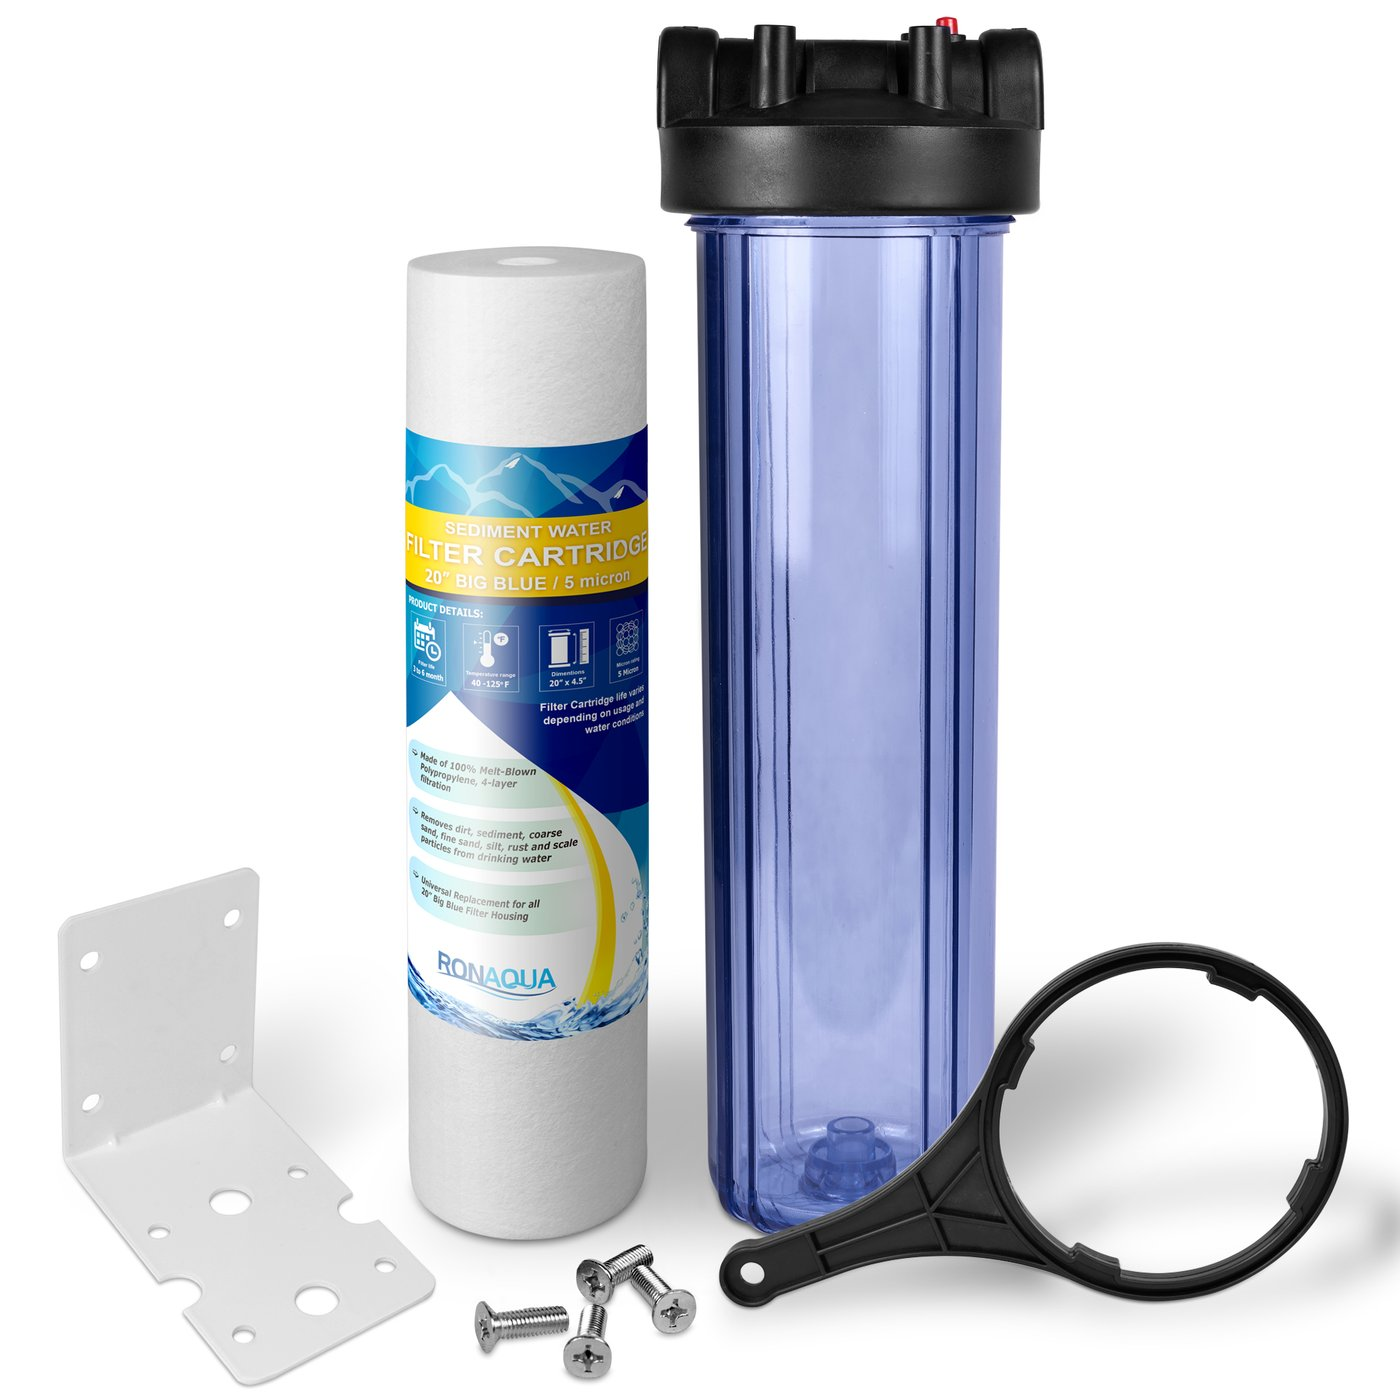 "20 Inches Transparent Big Blue Housing with Presser Relief Button, 1"" Inlet/Outlet Brass Port & 5 Micron Sediment Water Filter Cartridge"